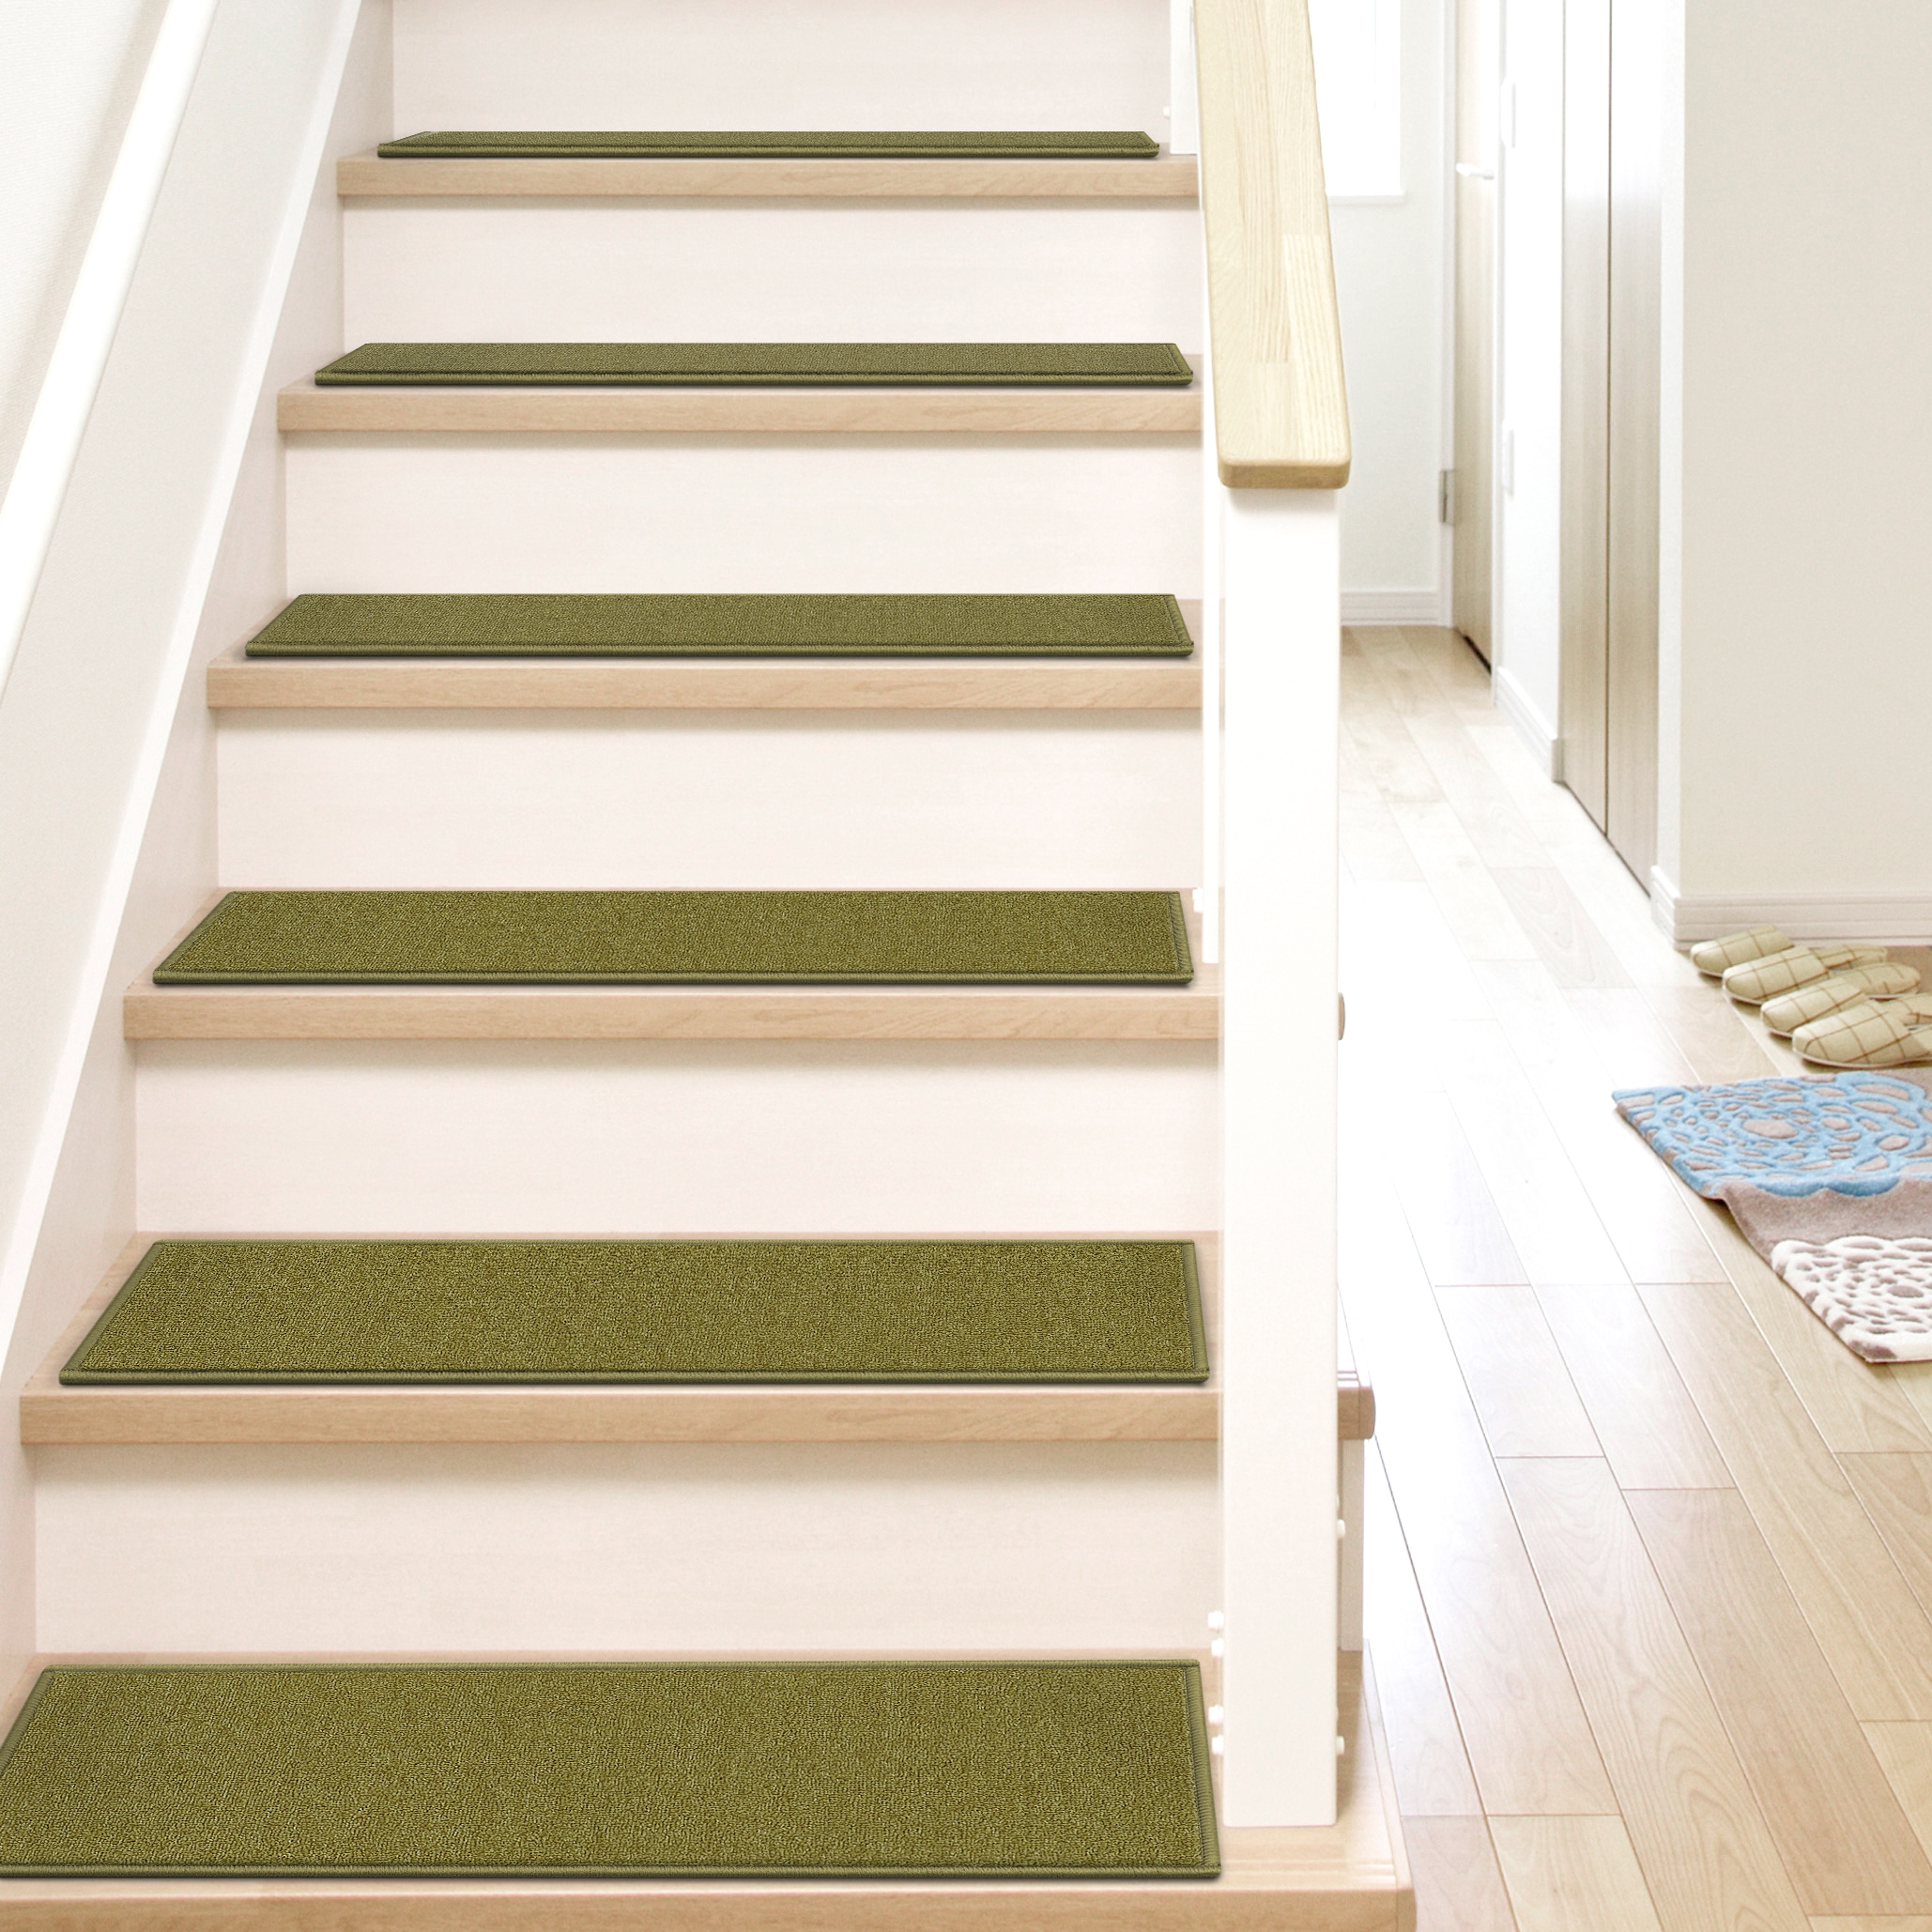 Well Woven Kings Court Warby Green Modern Solid Plain Rubber Back   Washable Non Slip Stair Treads   Carpet Stair   Skid Resistant   Rubber Backing   Nova Morrocan Washable   Removable Washable